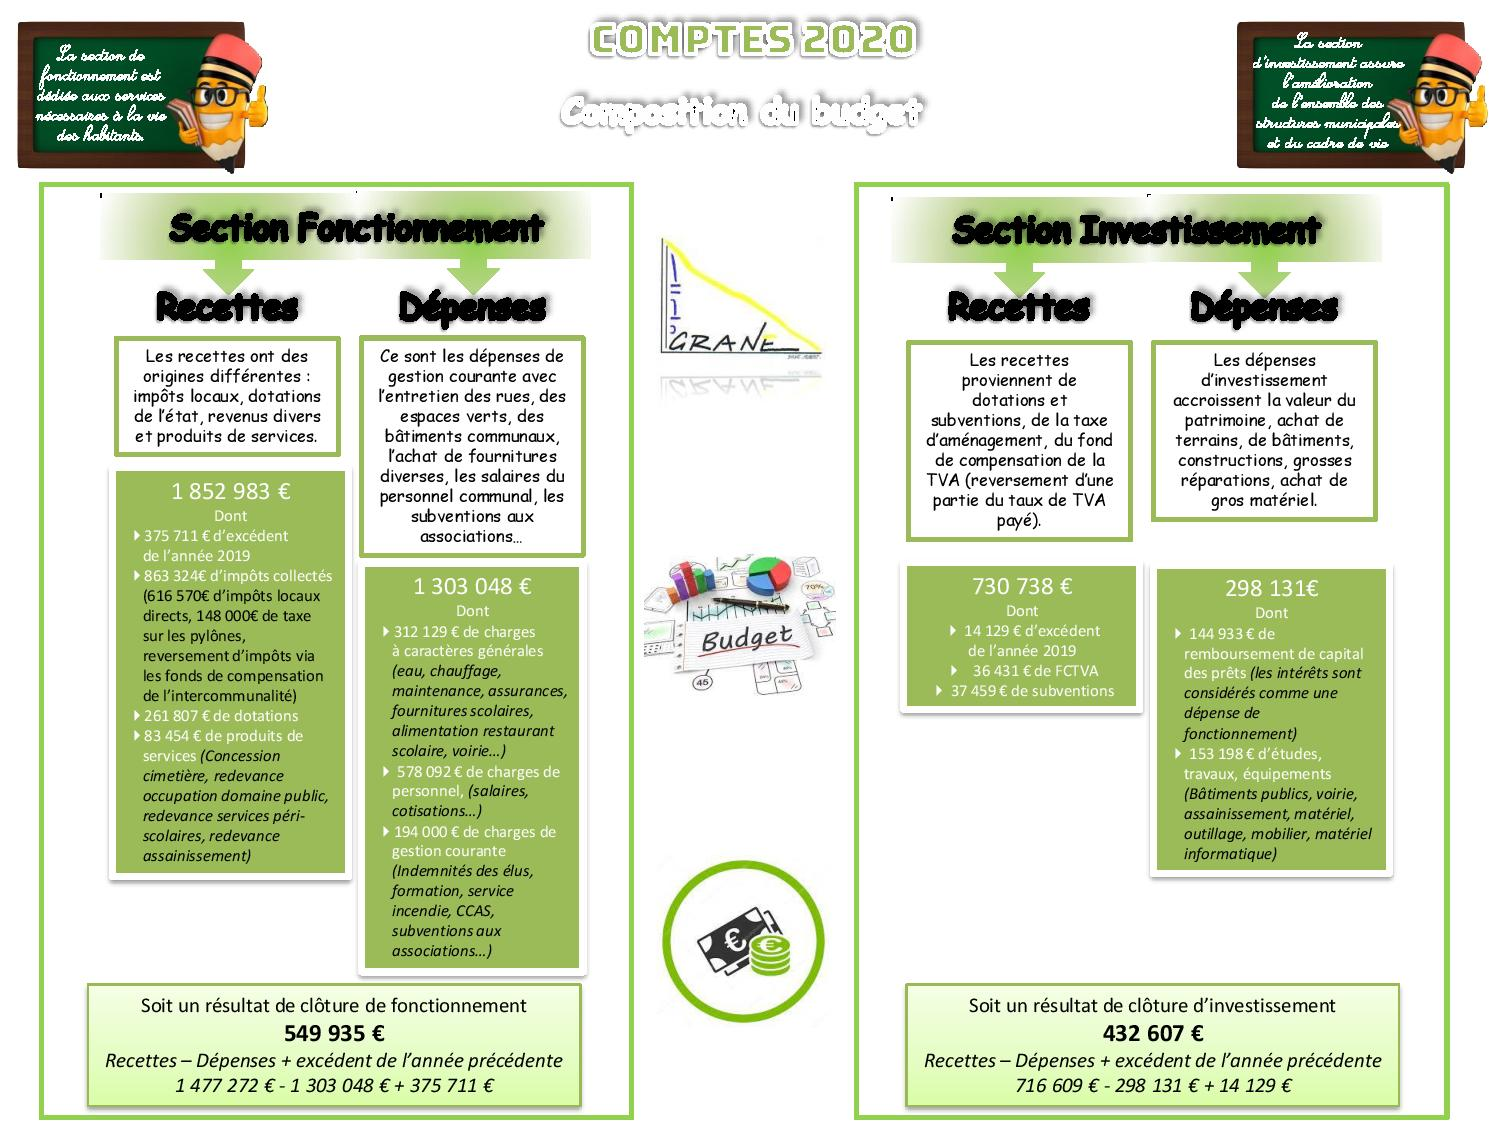 EXPLICATIONS BUDGET AUX GRANOIS-page-002.jpg